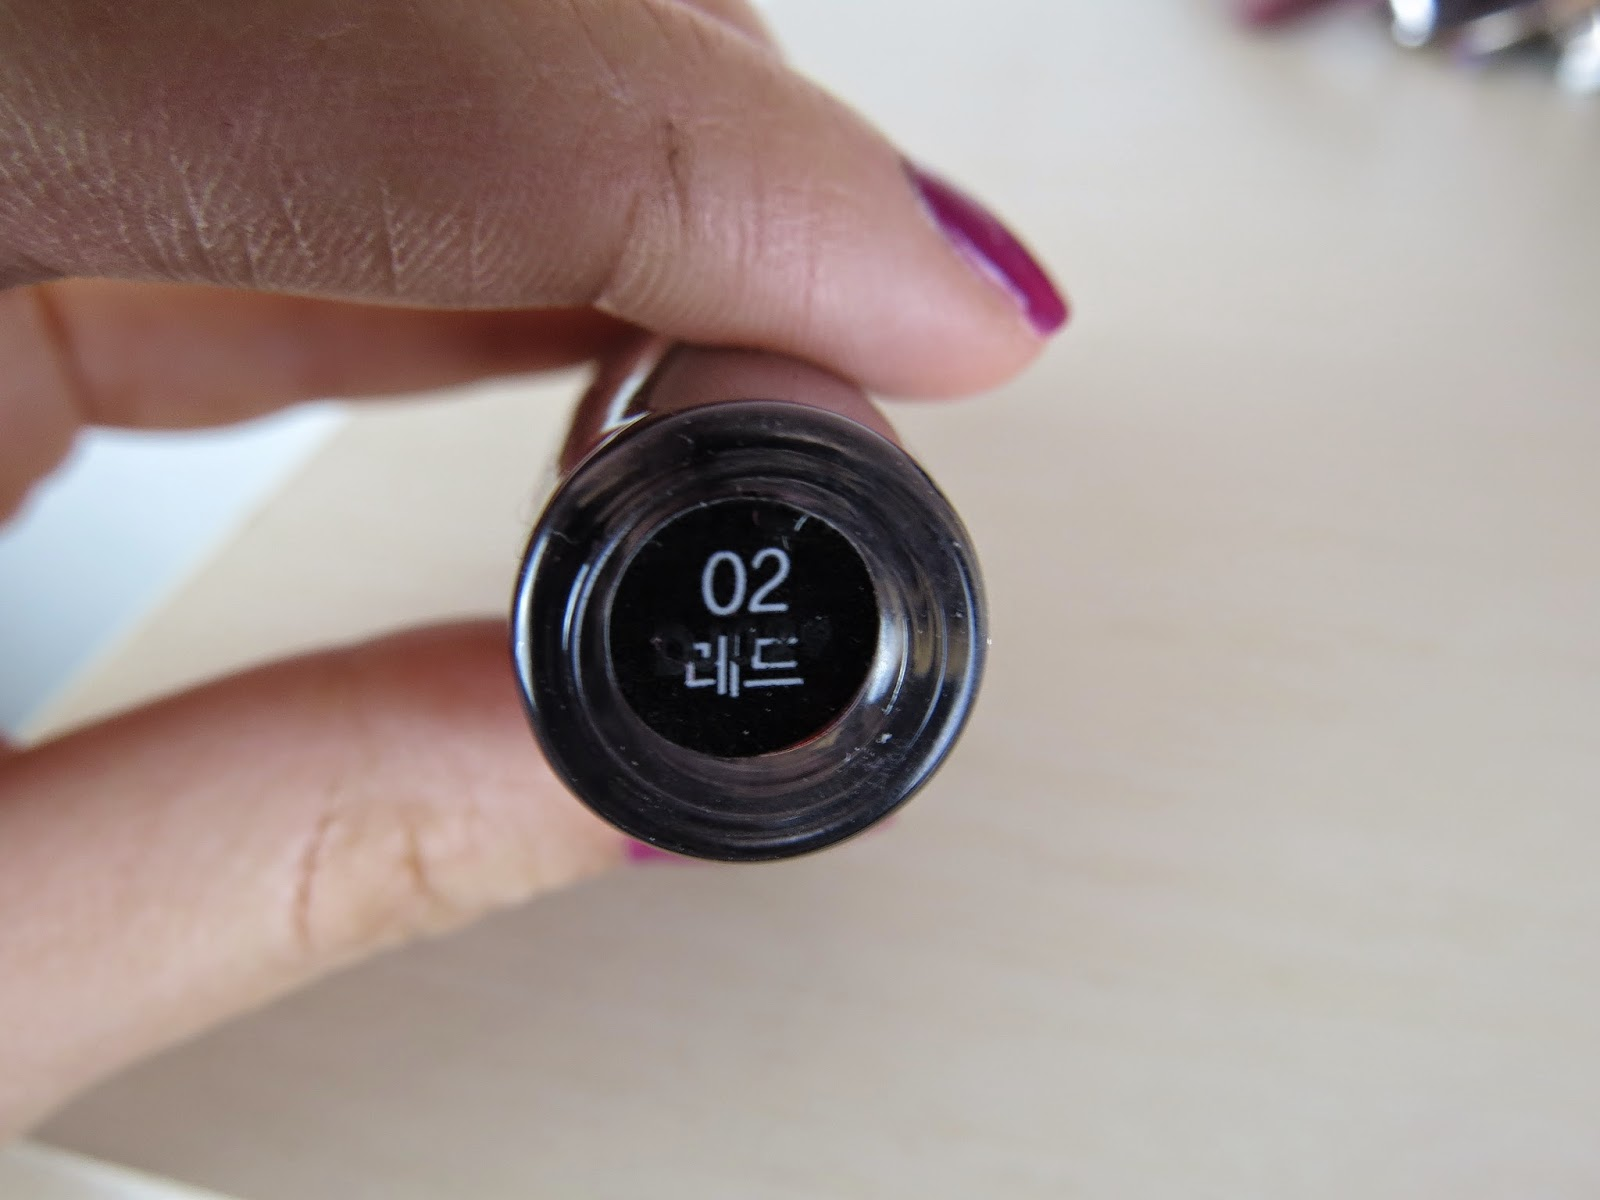 Morgan Alison Stewart Review Tony Moly Tint Delight Lip Like I Mentioned The Shade Number Have Is No 02